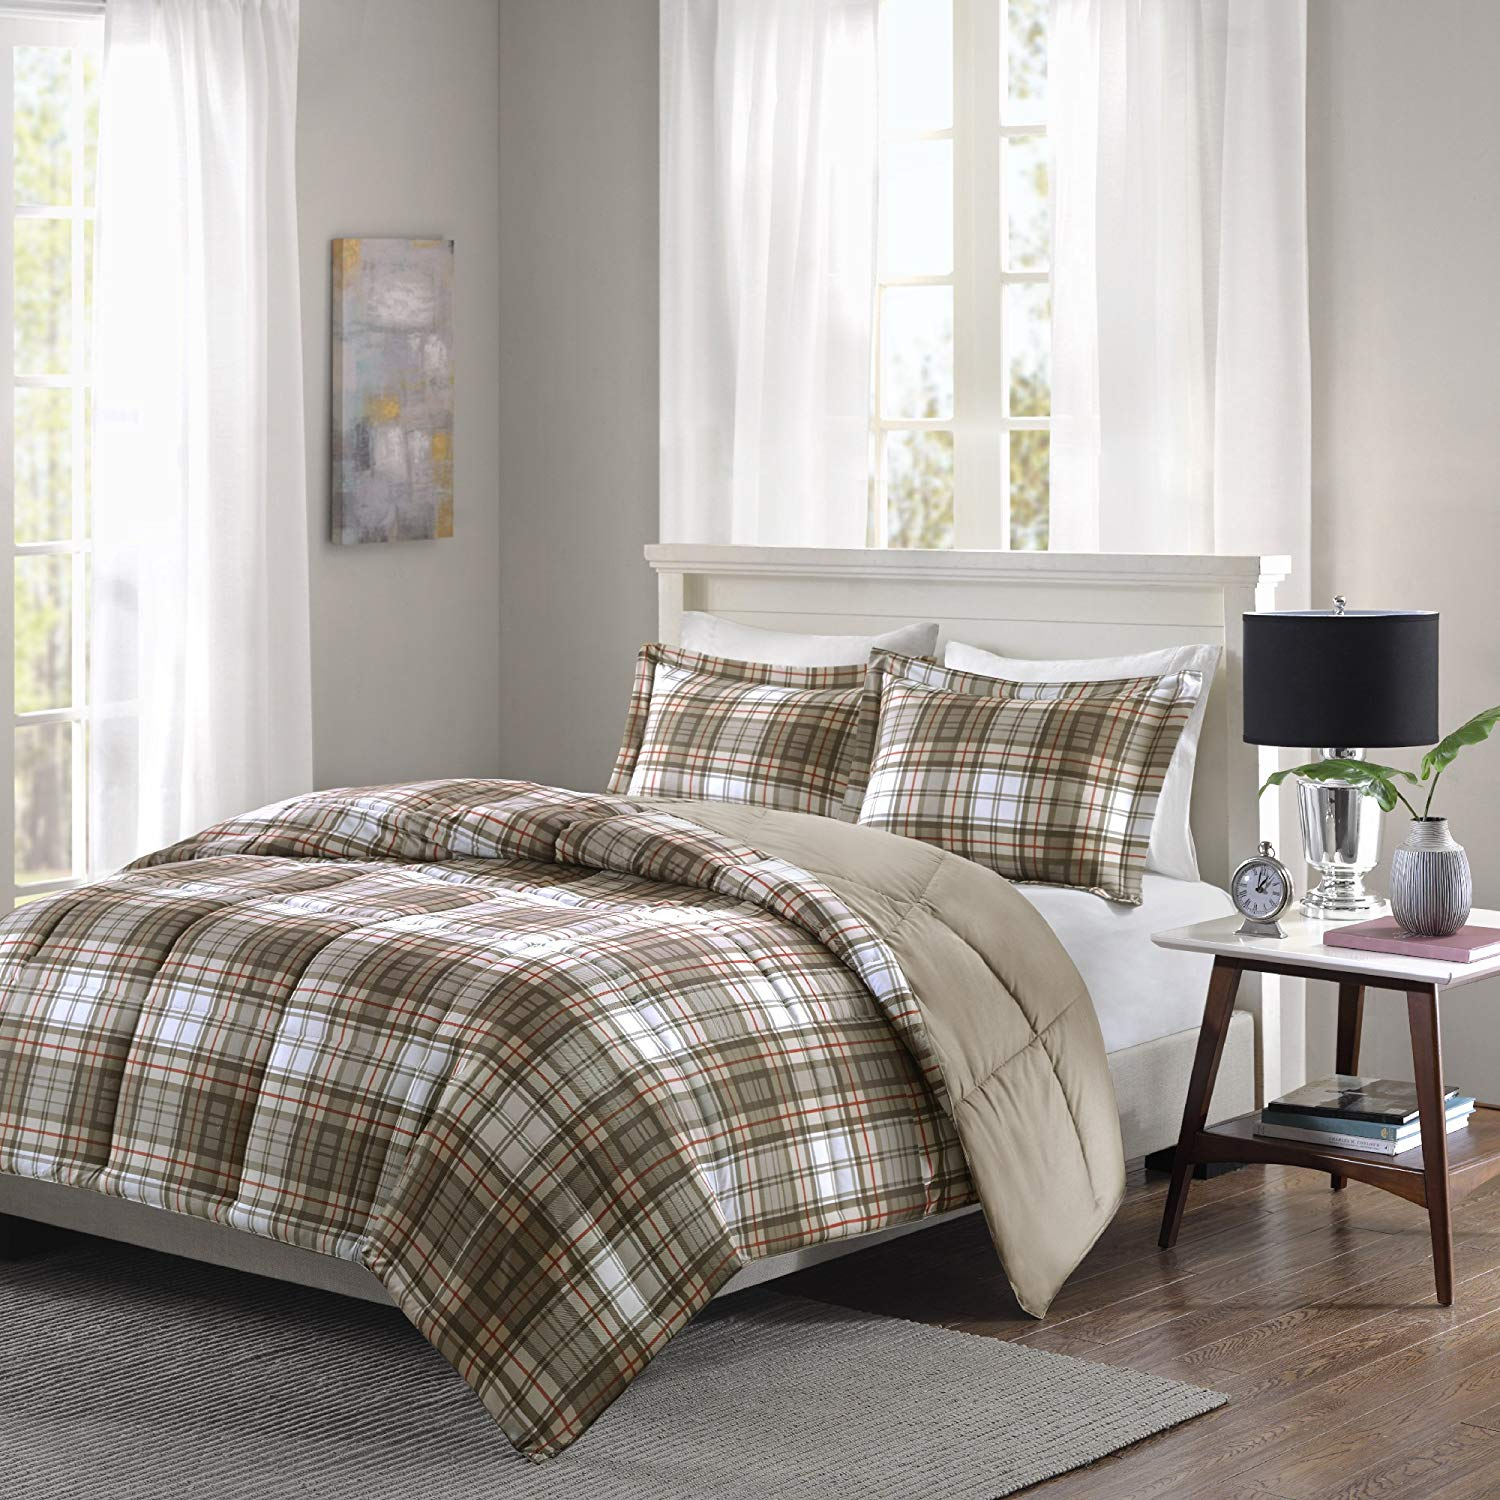 CA 3 Piece White Red Tan Brown Buffalo Checked Comforter Full Queen Set, Classic Plaid Bedding Extra Warmth Lightweight Checkered Madras Taupe Beige Down Alternative, Reversible Solid Microfiber